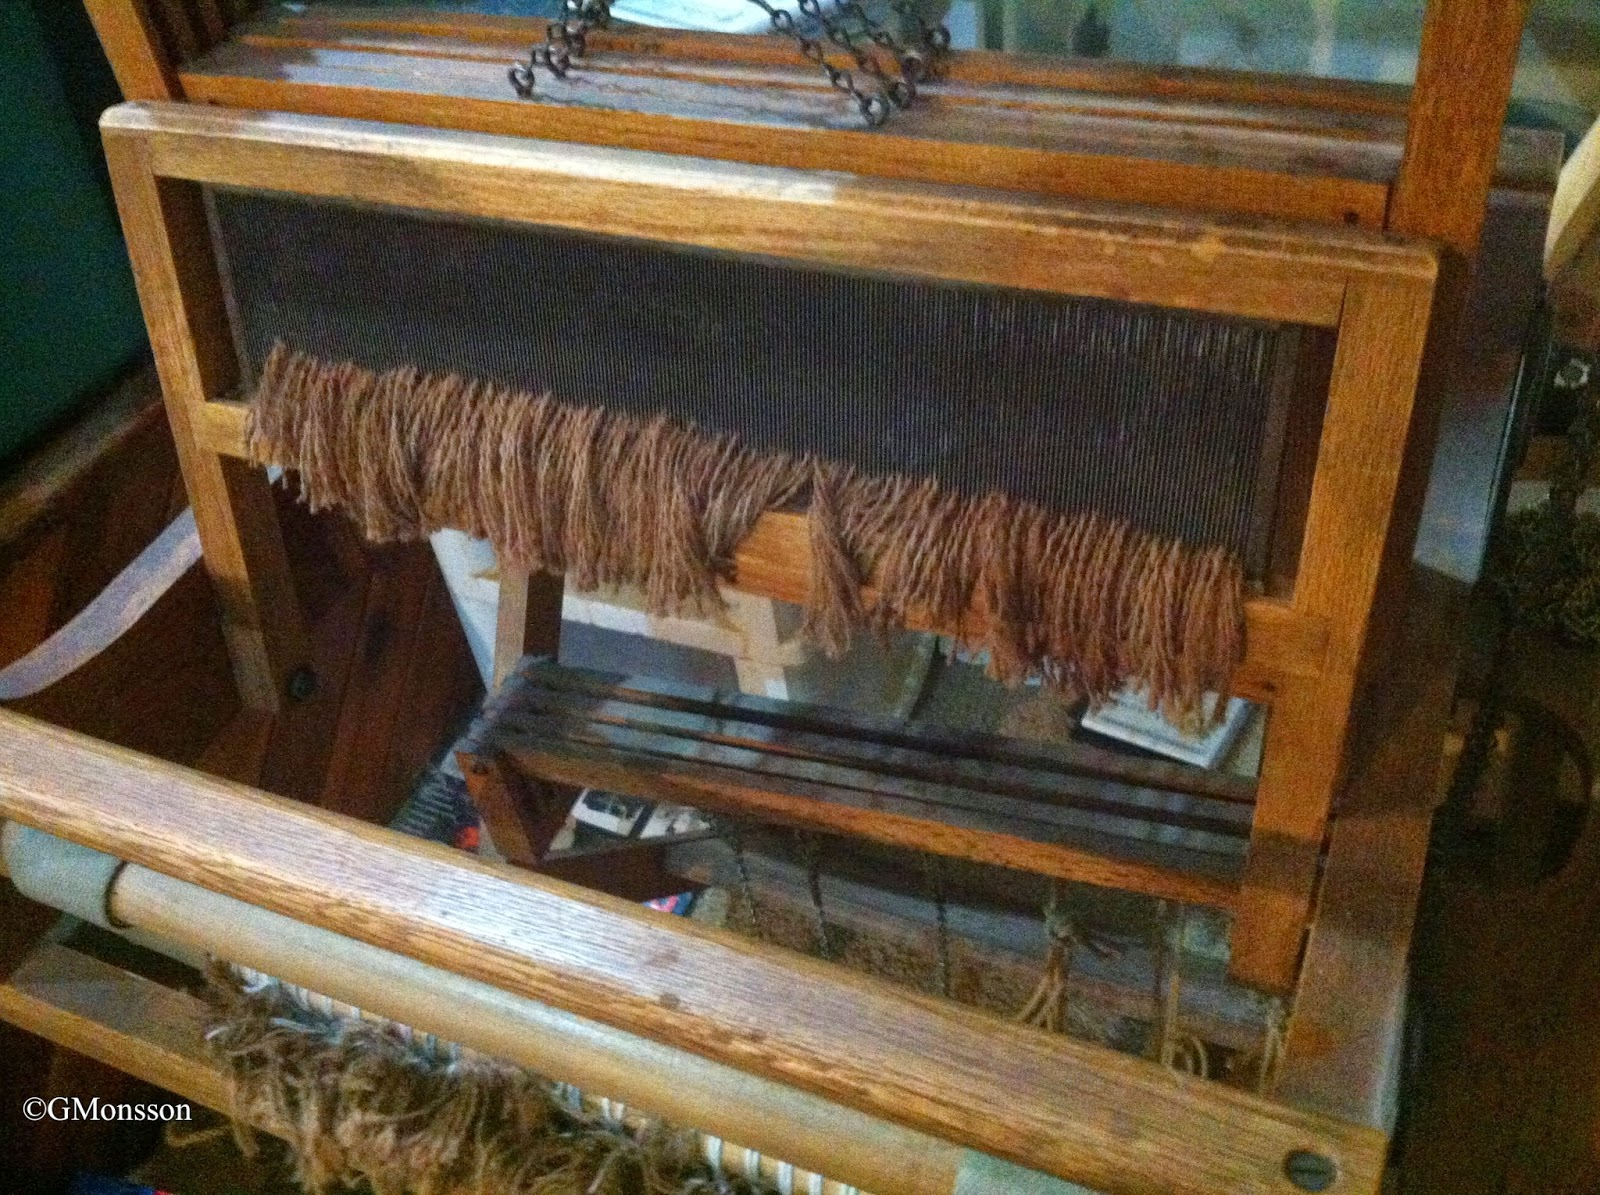 brown thrums hanging on the loom